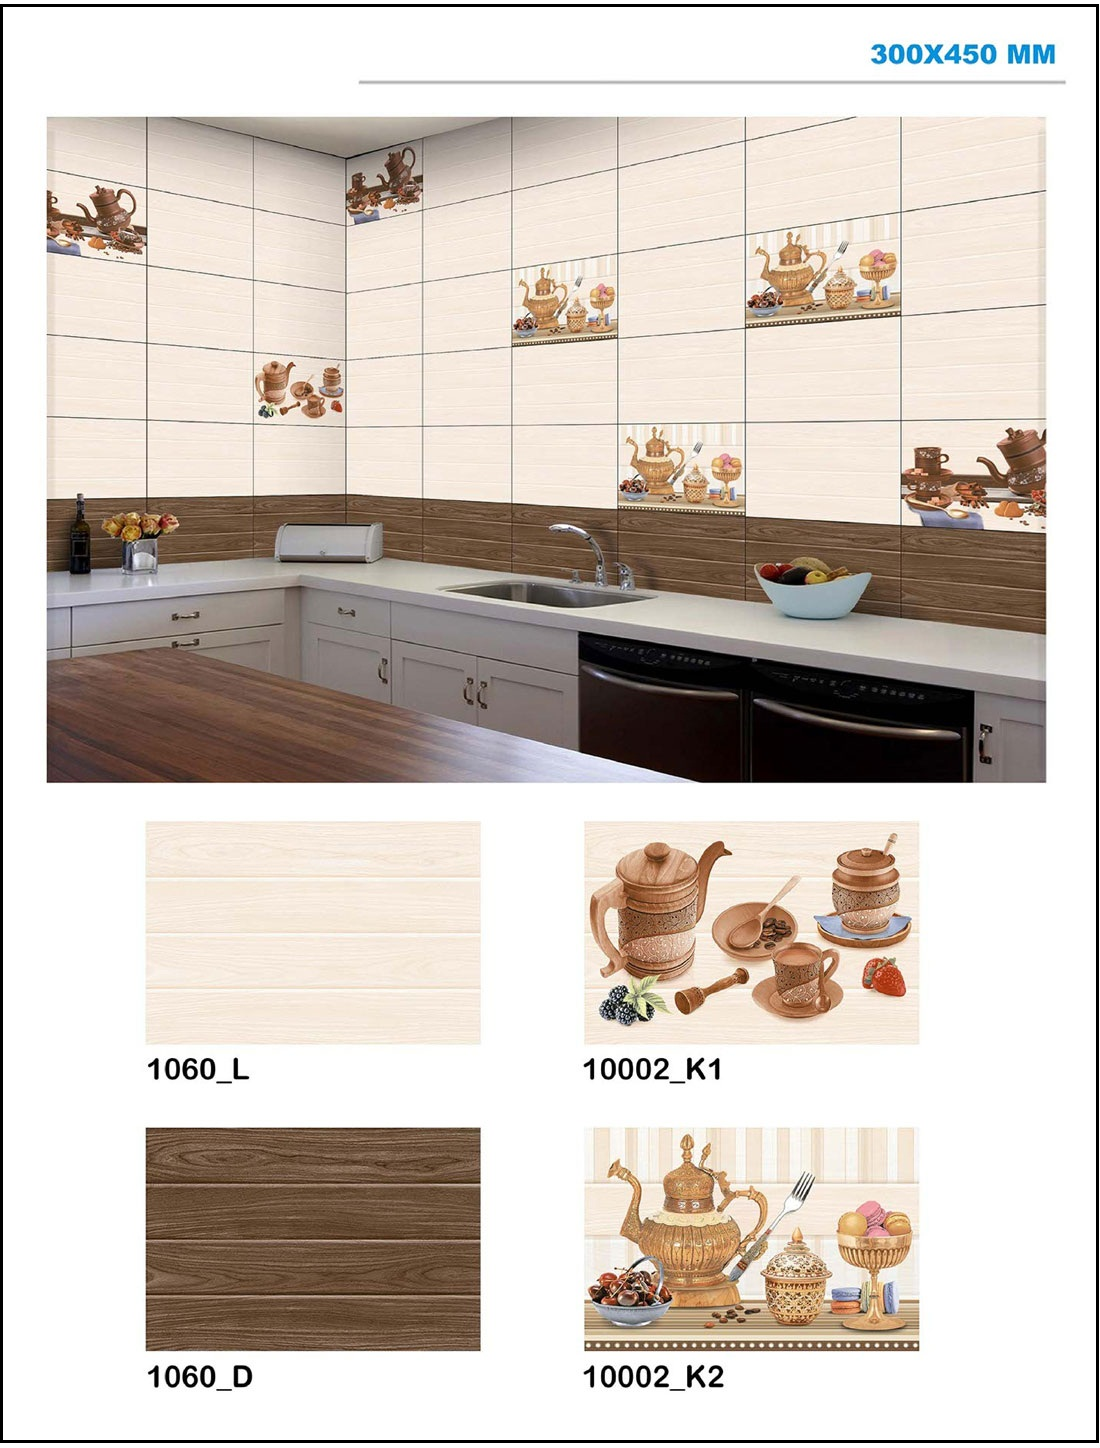 12x18 Kitchen Tiles 12x18 Kitchen Wall Tiles With Texture Color And Design Sasta Tiles